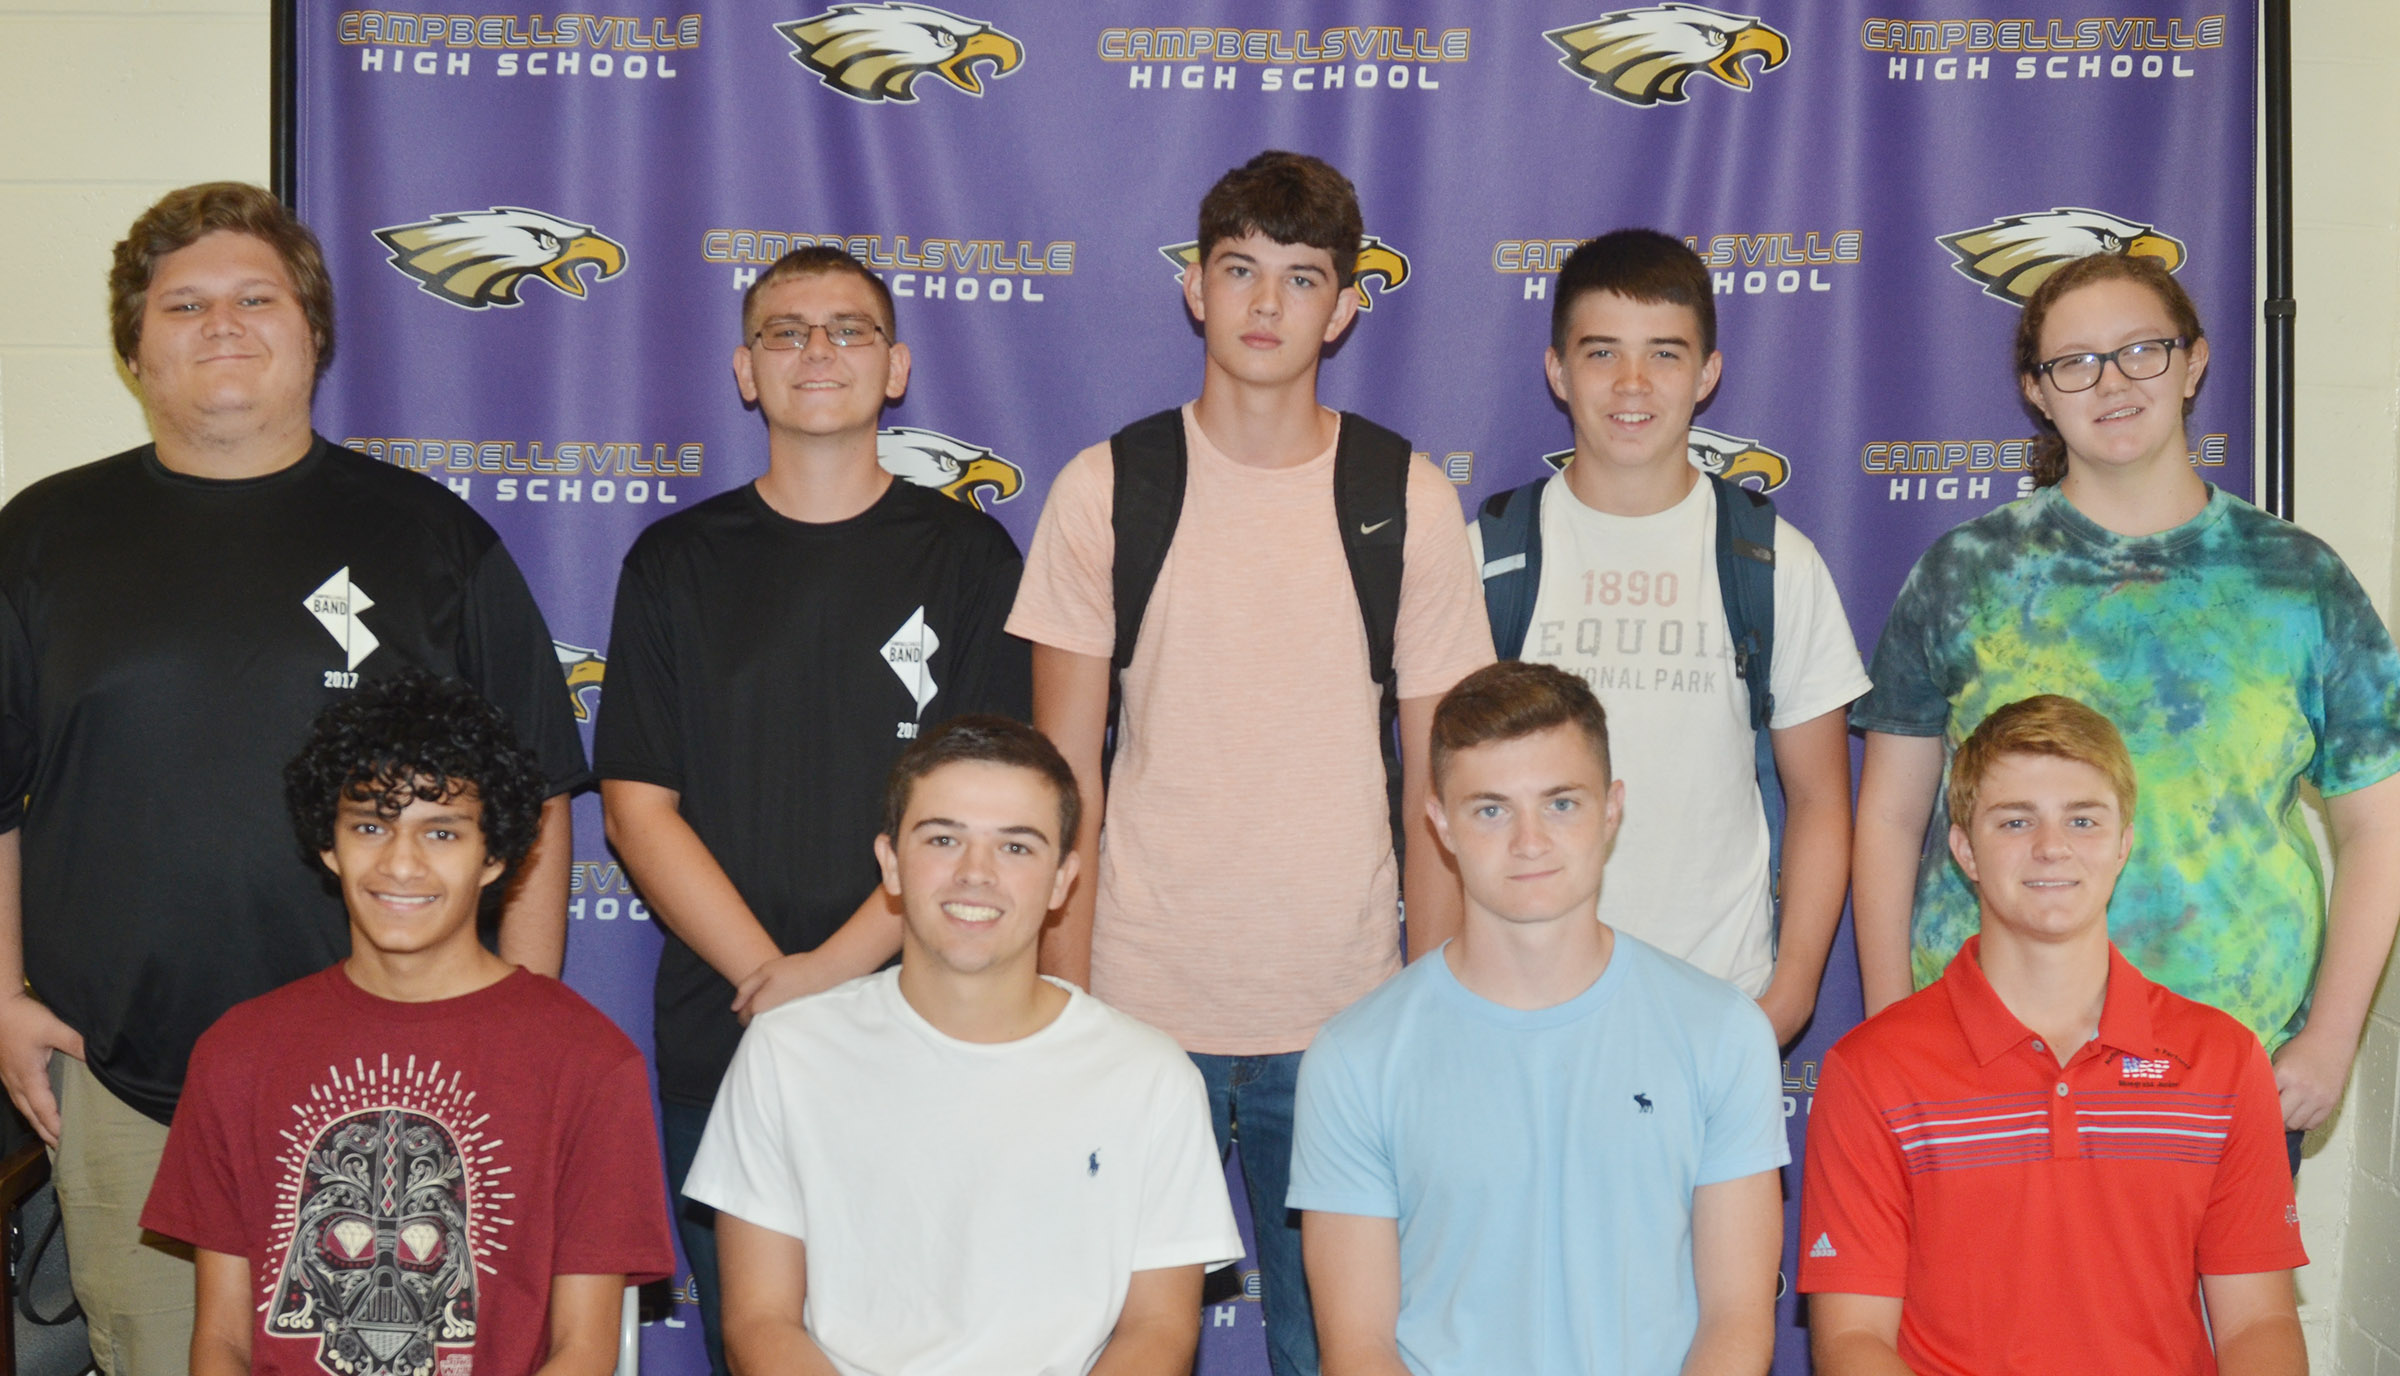 Campbellsville High School students were recently recognized for their high AP test scores. Students who received scores of 3, 4 and 5, which will likely qualify for college credit, are, from left, front, sophomore Ben Arachi, junior Ryan Kearney and seniors Bryce Richardson and Alex Doss. Back, juniors Randy Harris and Brandon Greer and sophomores Mark Rigsby, Cole Kidwell and Emily Rodgers.